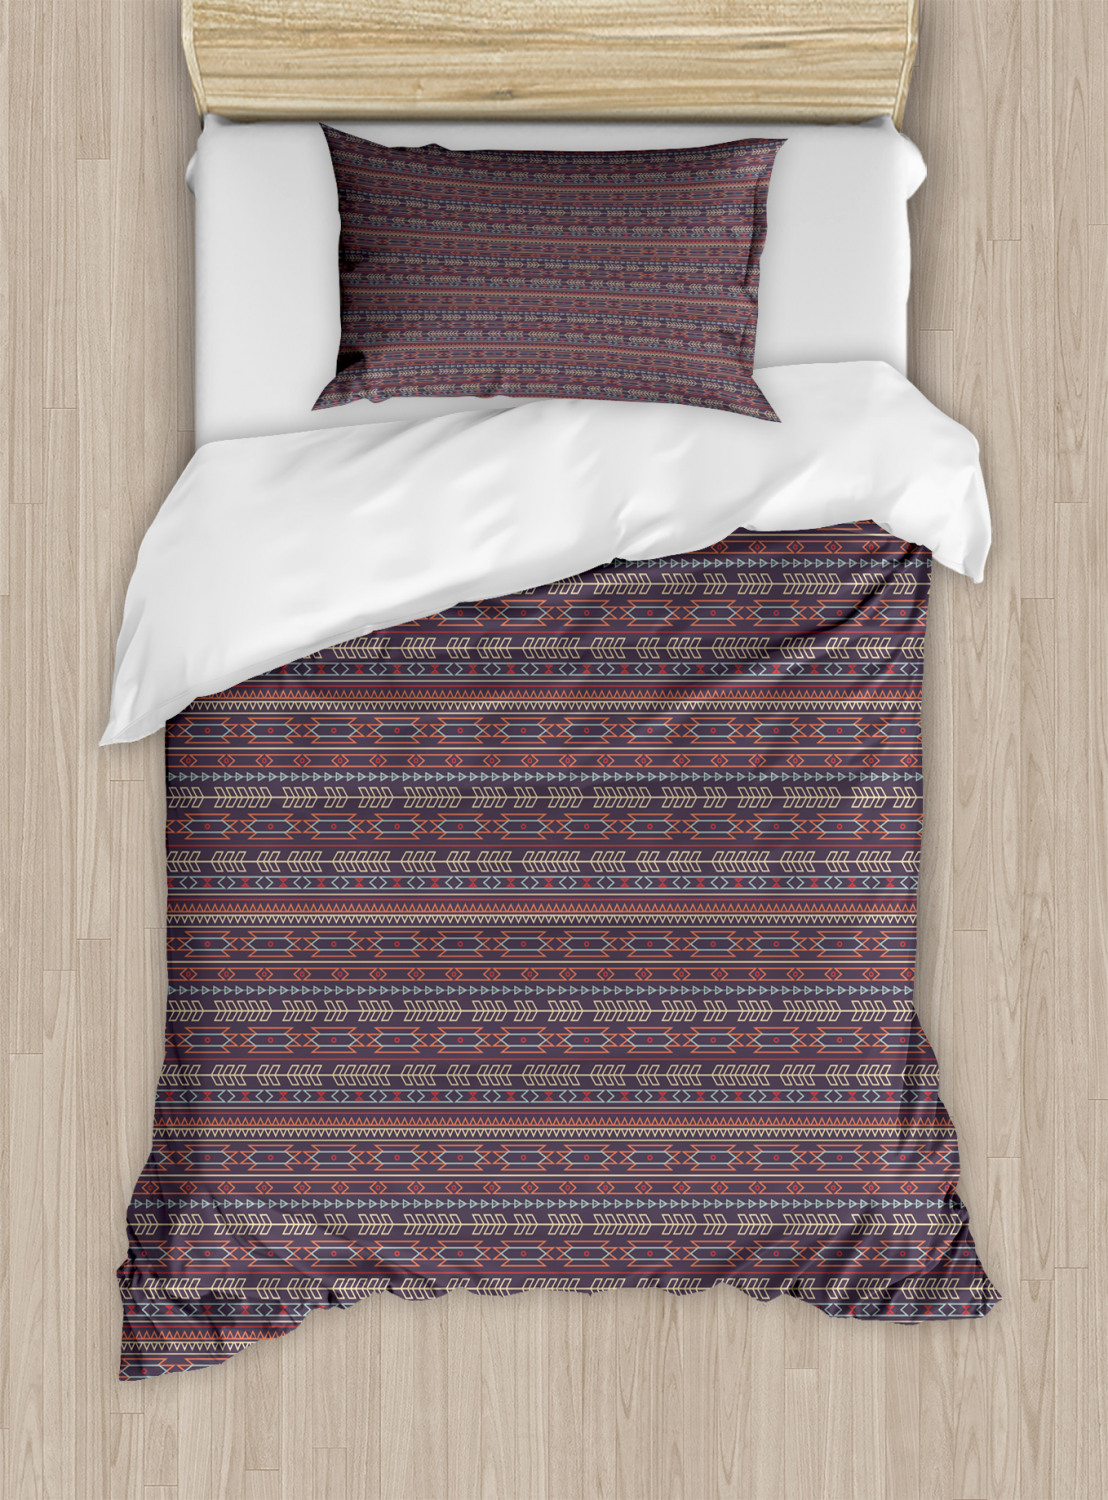 Timeless-Oriental-Duvet-Cover-Set-Twin-Queen-King-Sizes-with-Pillow-Shams thumbnail 4